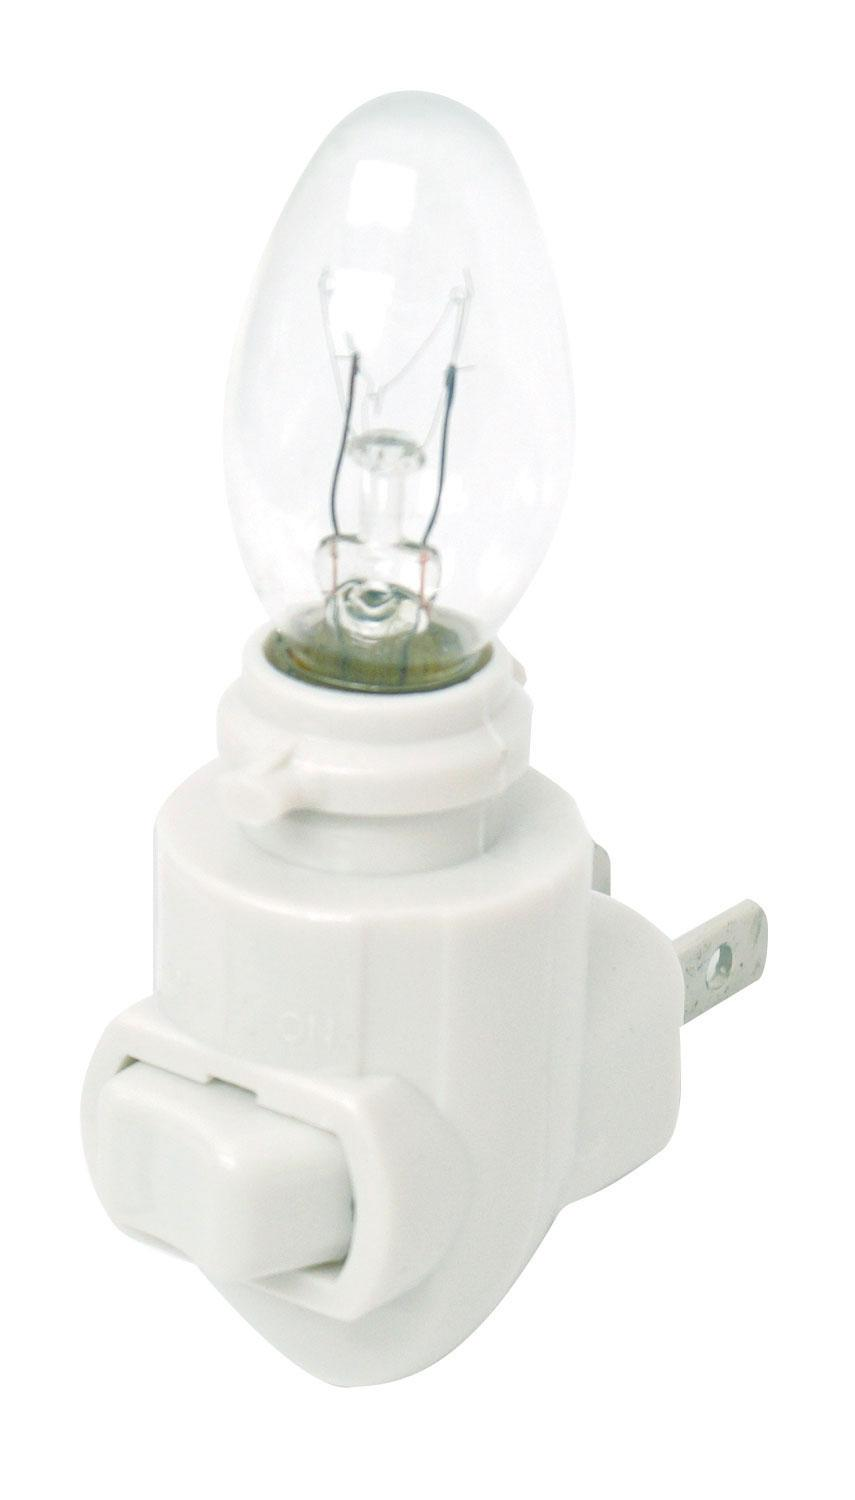 White Night Light with 4w Bulb - 6 Pack